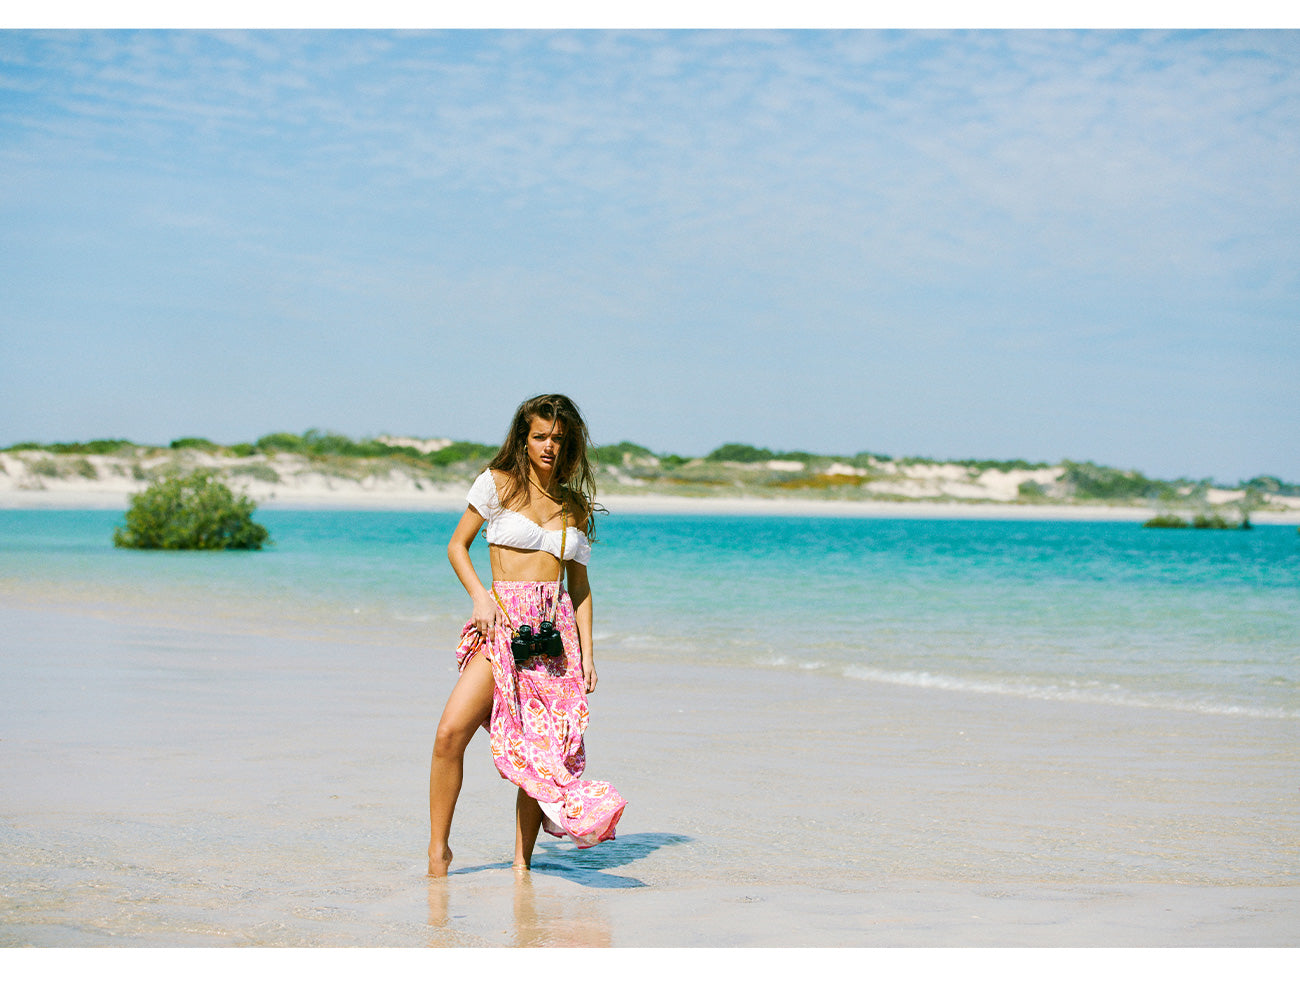 Forget Me Not the new sustainable fashion campaign shot at Cape Leveque, WA